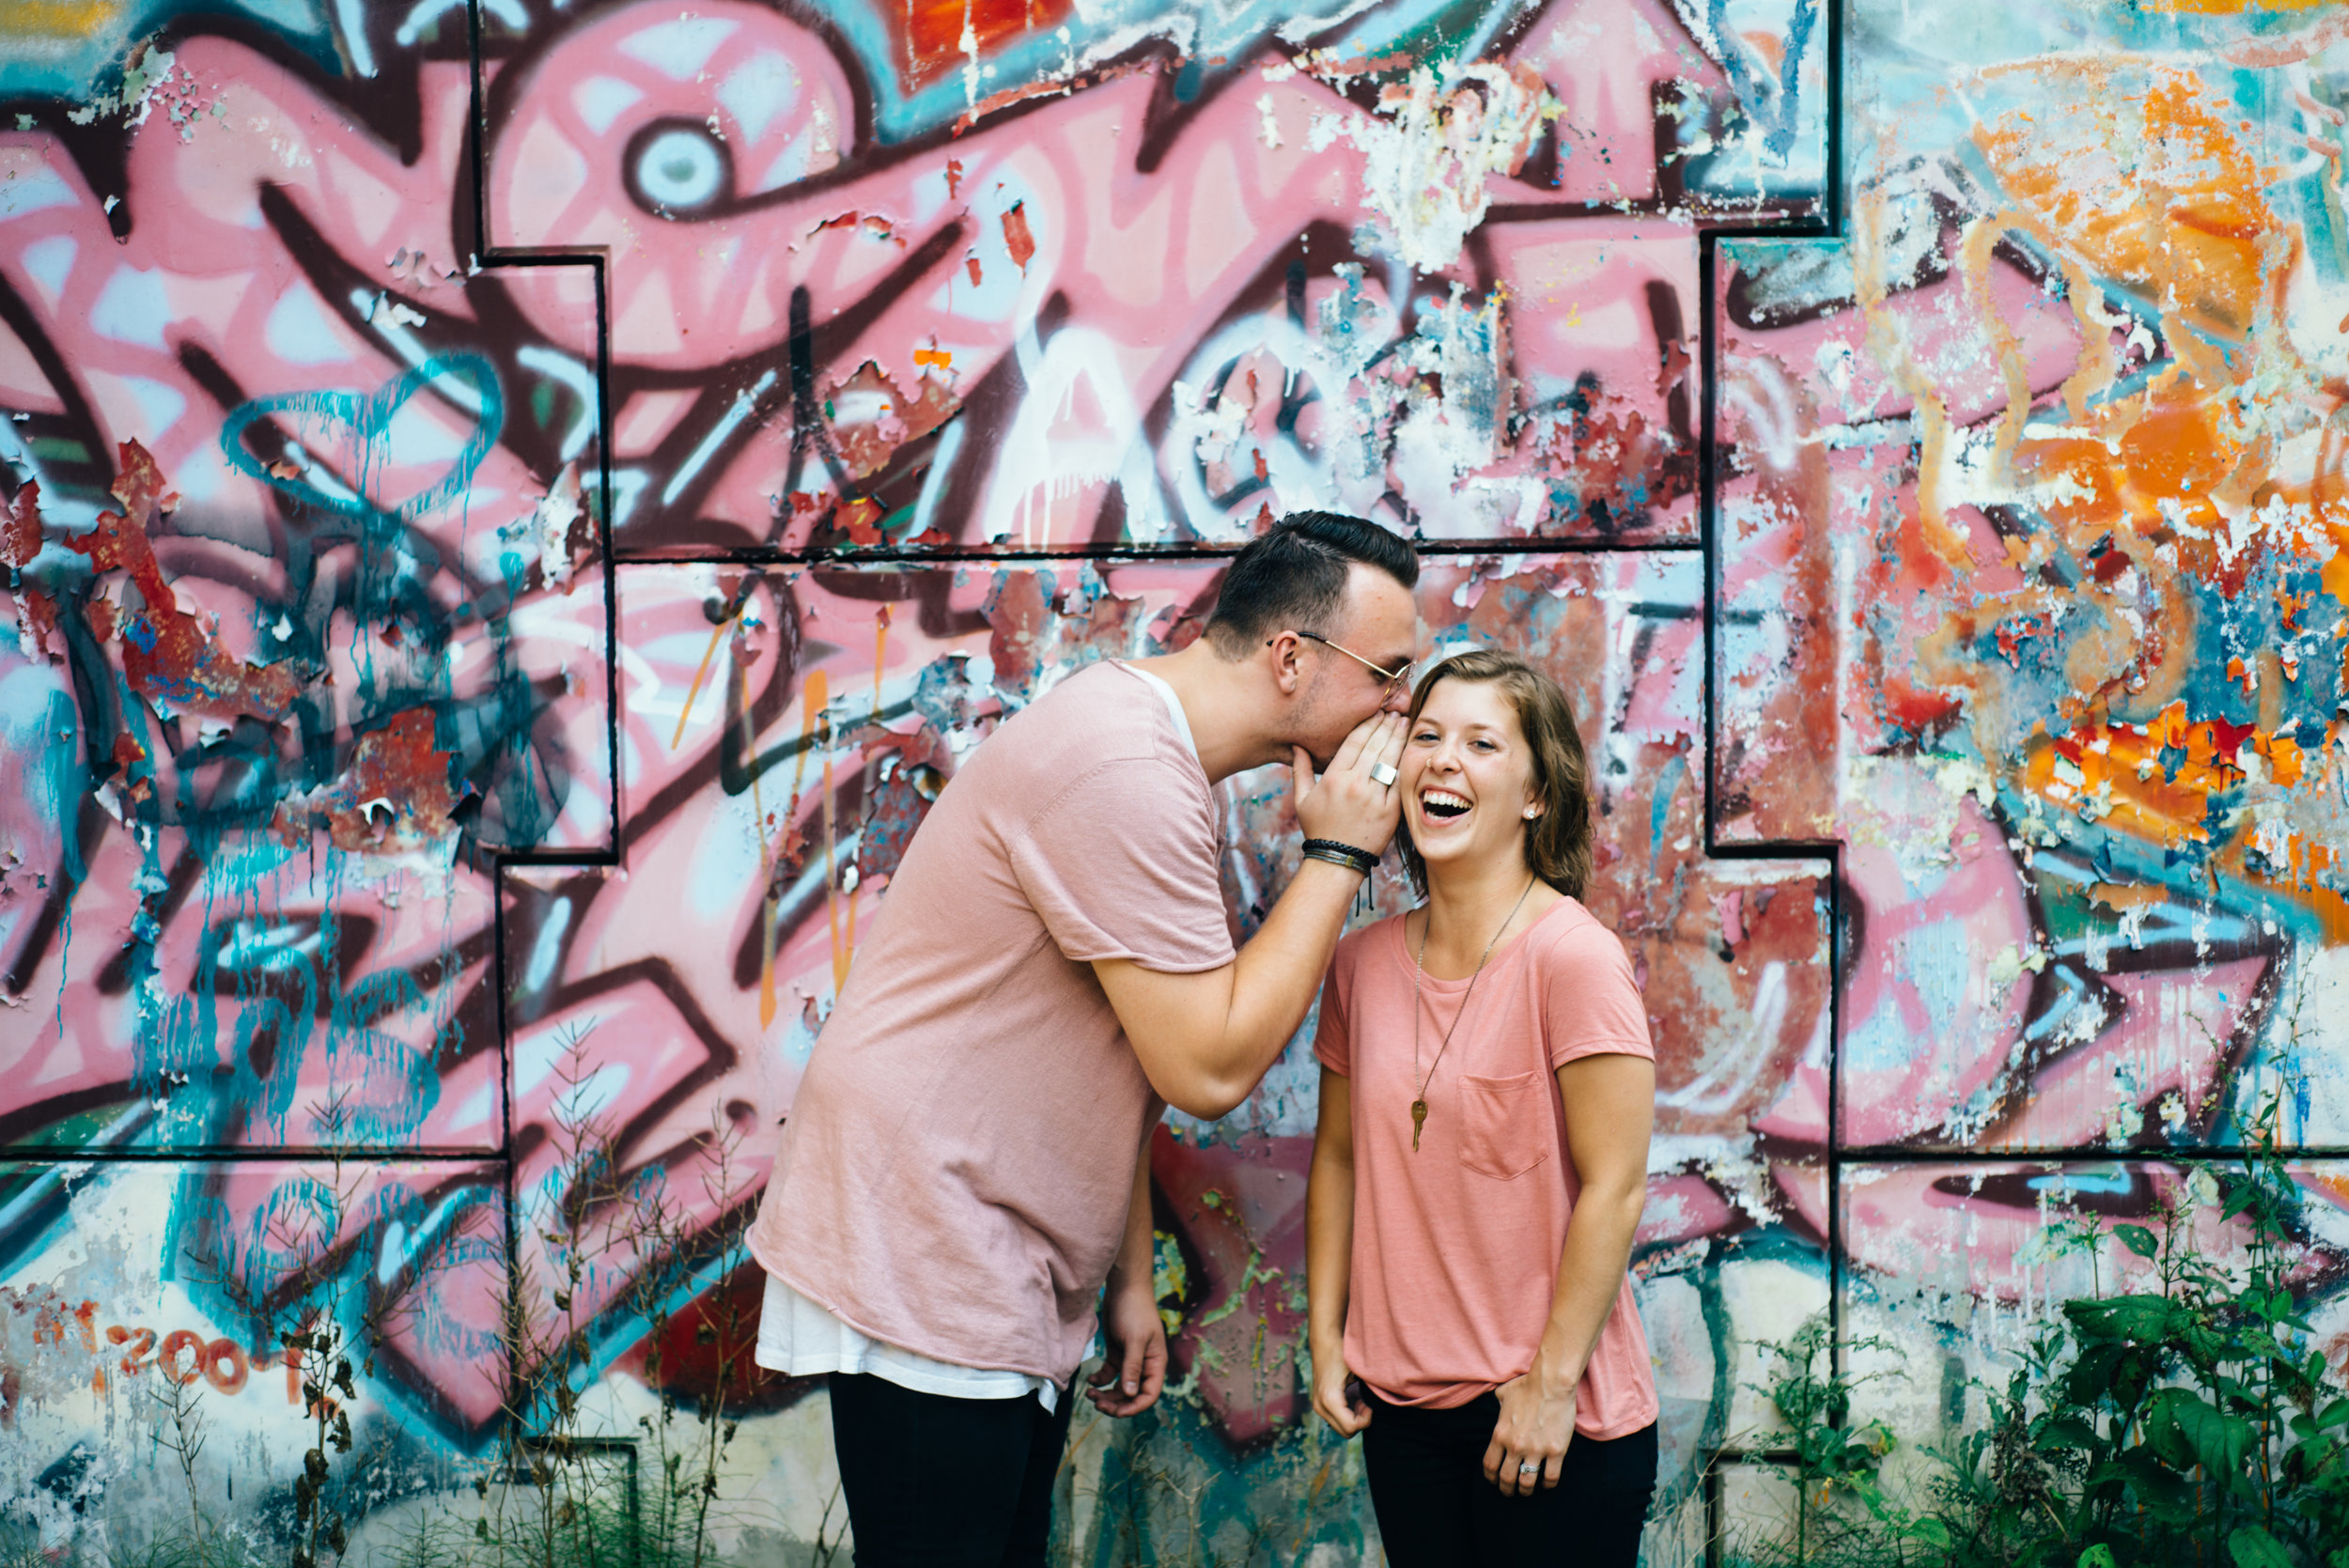 Young hip couple wearing pink shirts and black skinny jeans in front of pink graffiti wall